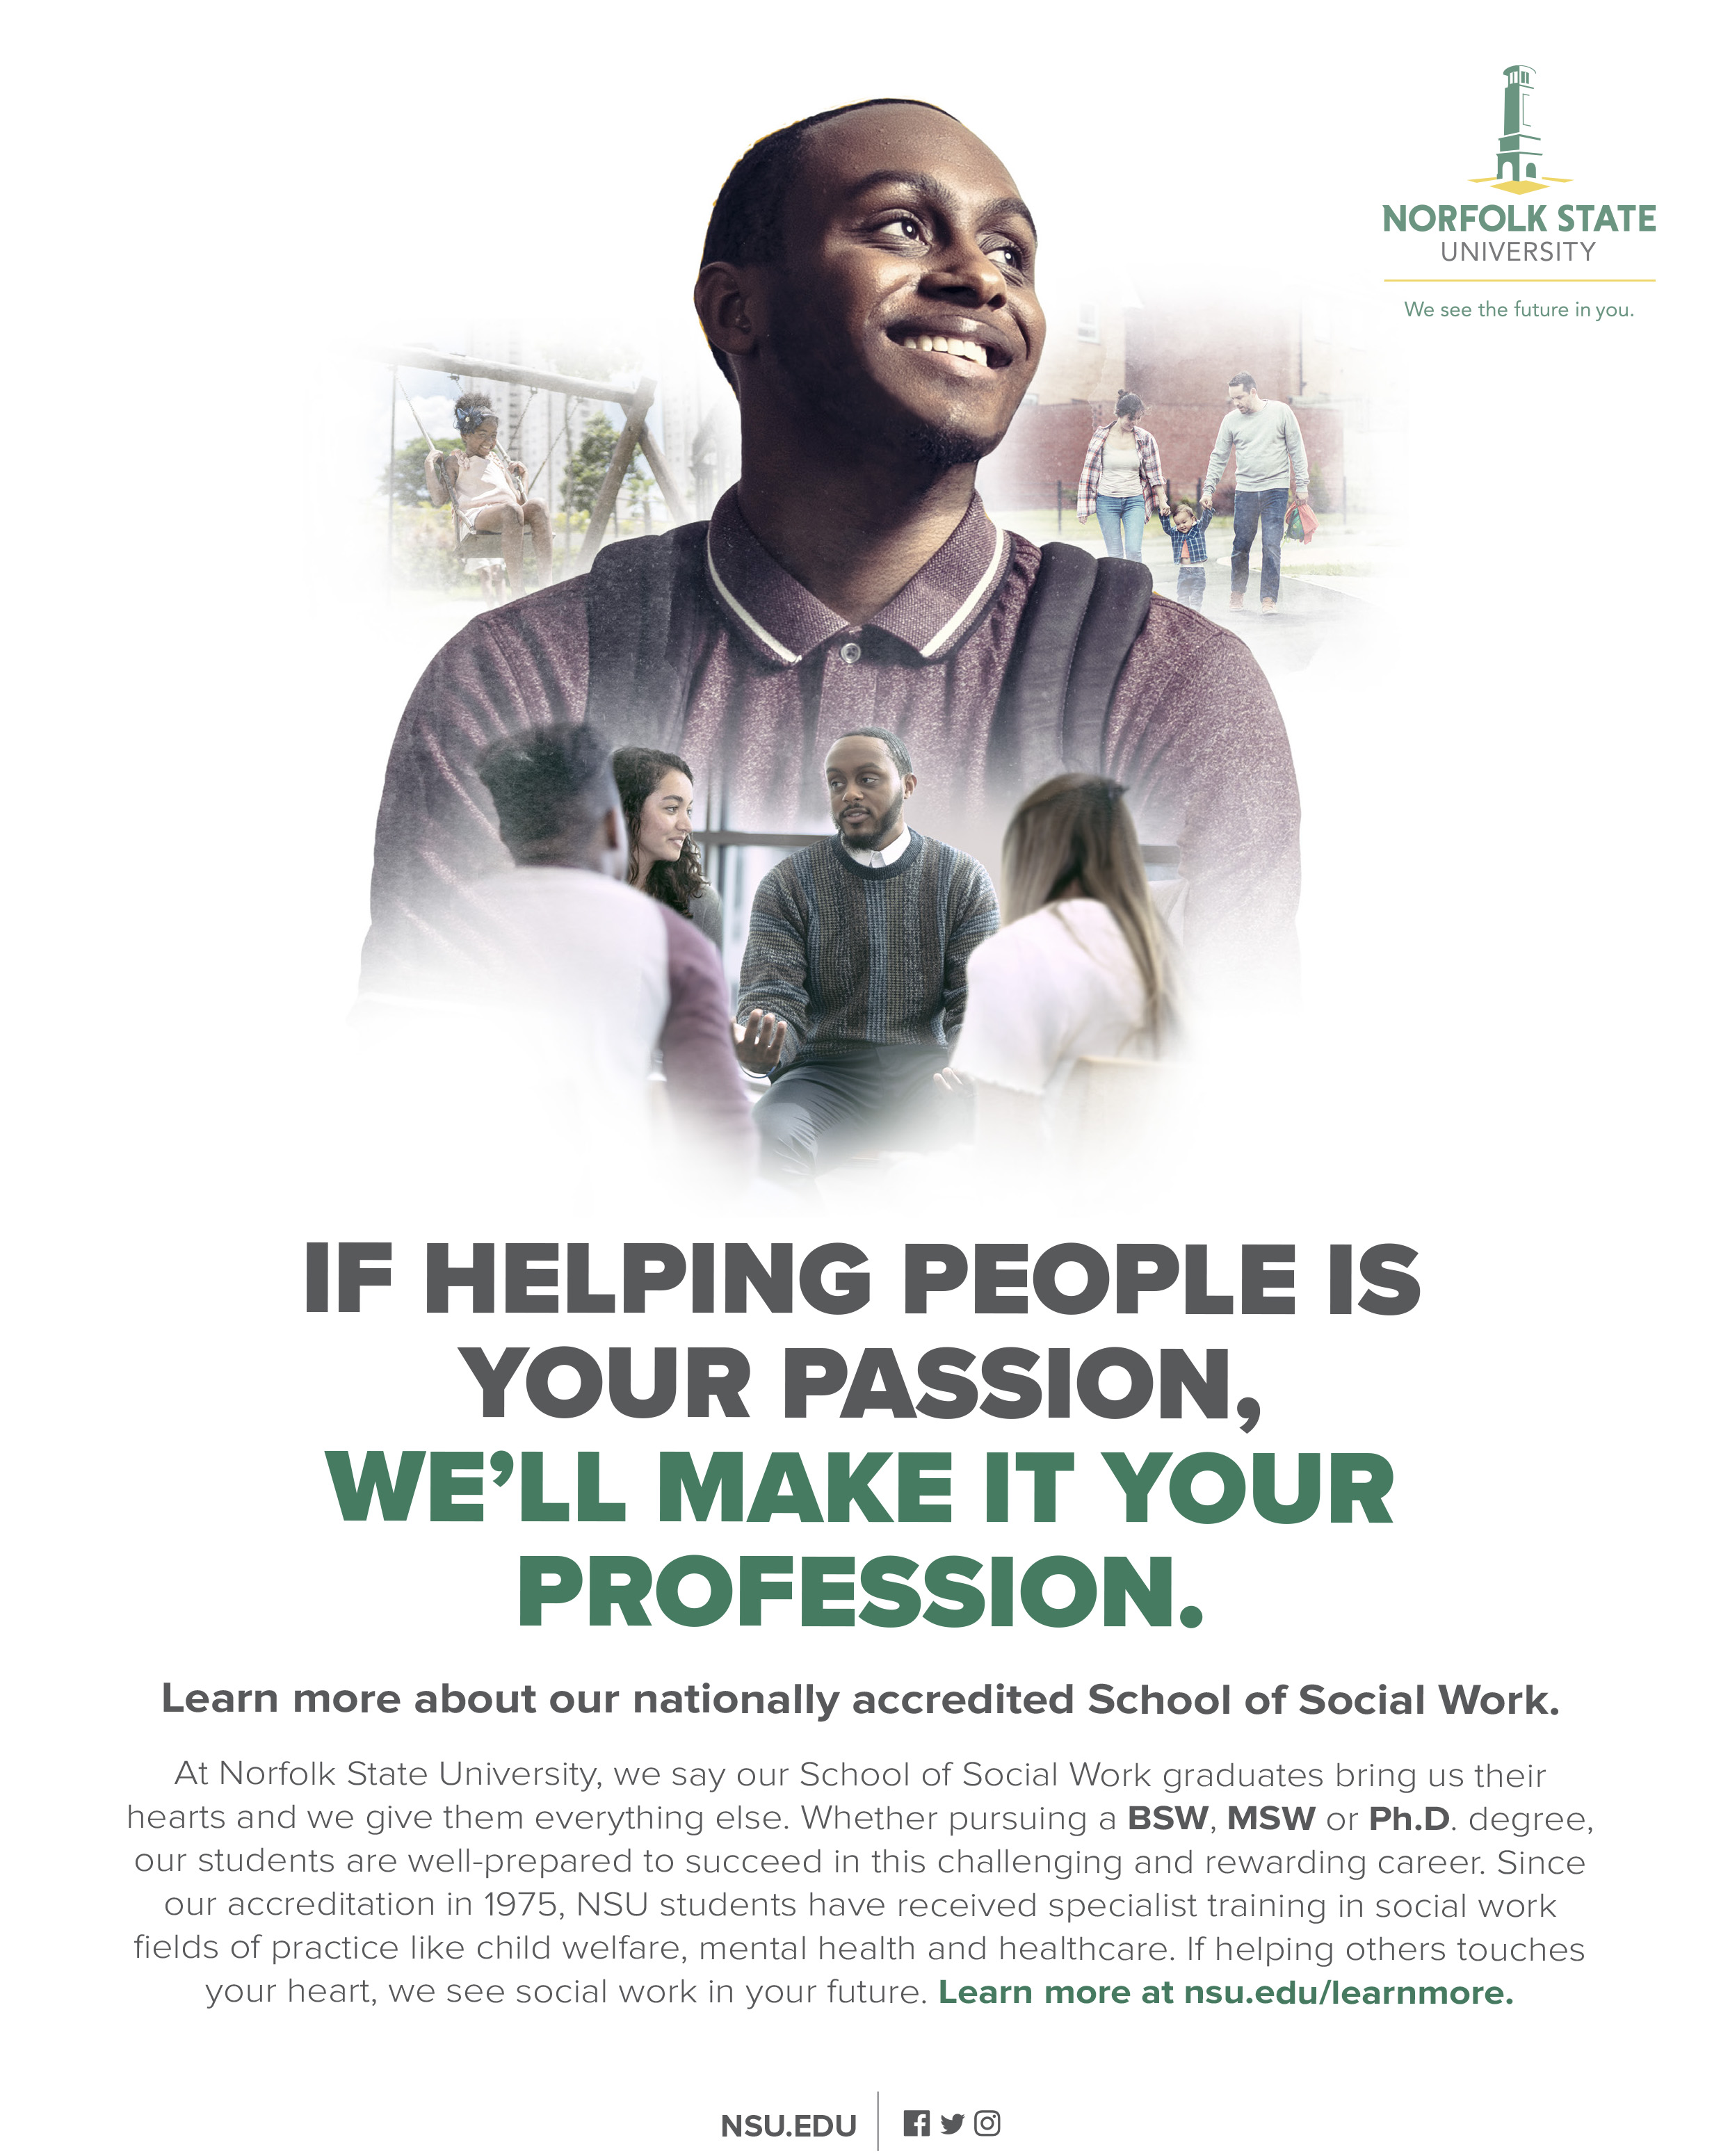 If helping people is your passion, we'll make it your profession. Learn more about our nationally accredited School of Social Work. At Norfolk State University, we say our School of Social Work graduates bring us their hearts and we give them everything else. Whether pursuing a BSW, MSW or Ph.D. degree, our students are well-prepared to succeed in this challenging and rewarding career. Since our accreditation in 1975, NSU students have received specialist training in social work fields of practice like child welfare, mental health and healthcare. If helping others touches your heart, we see social work in your future. Learn more at nsu.edu/learnmore